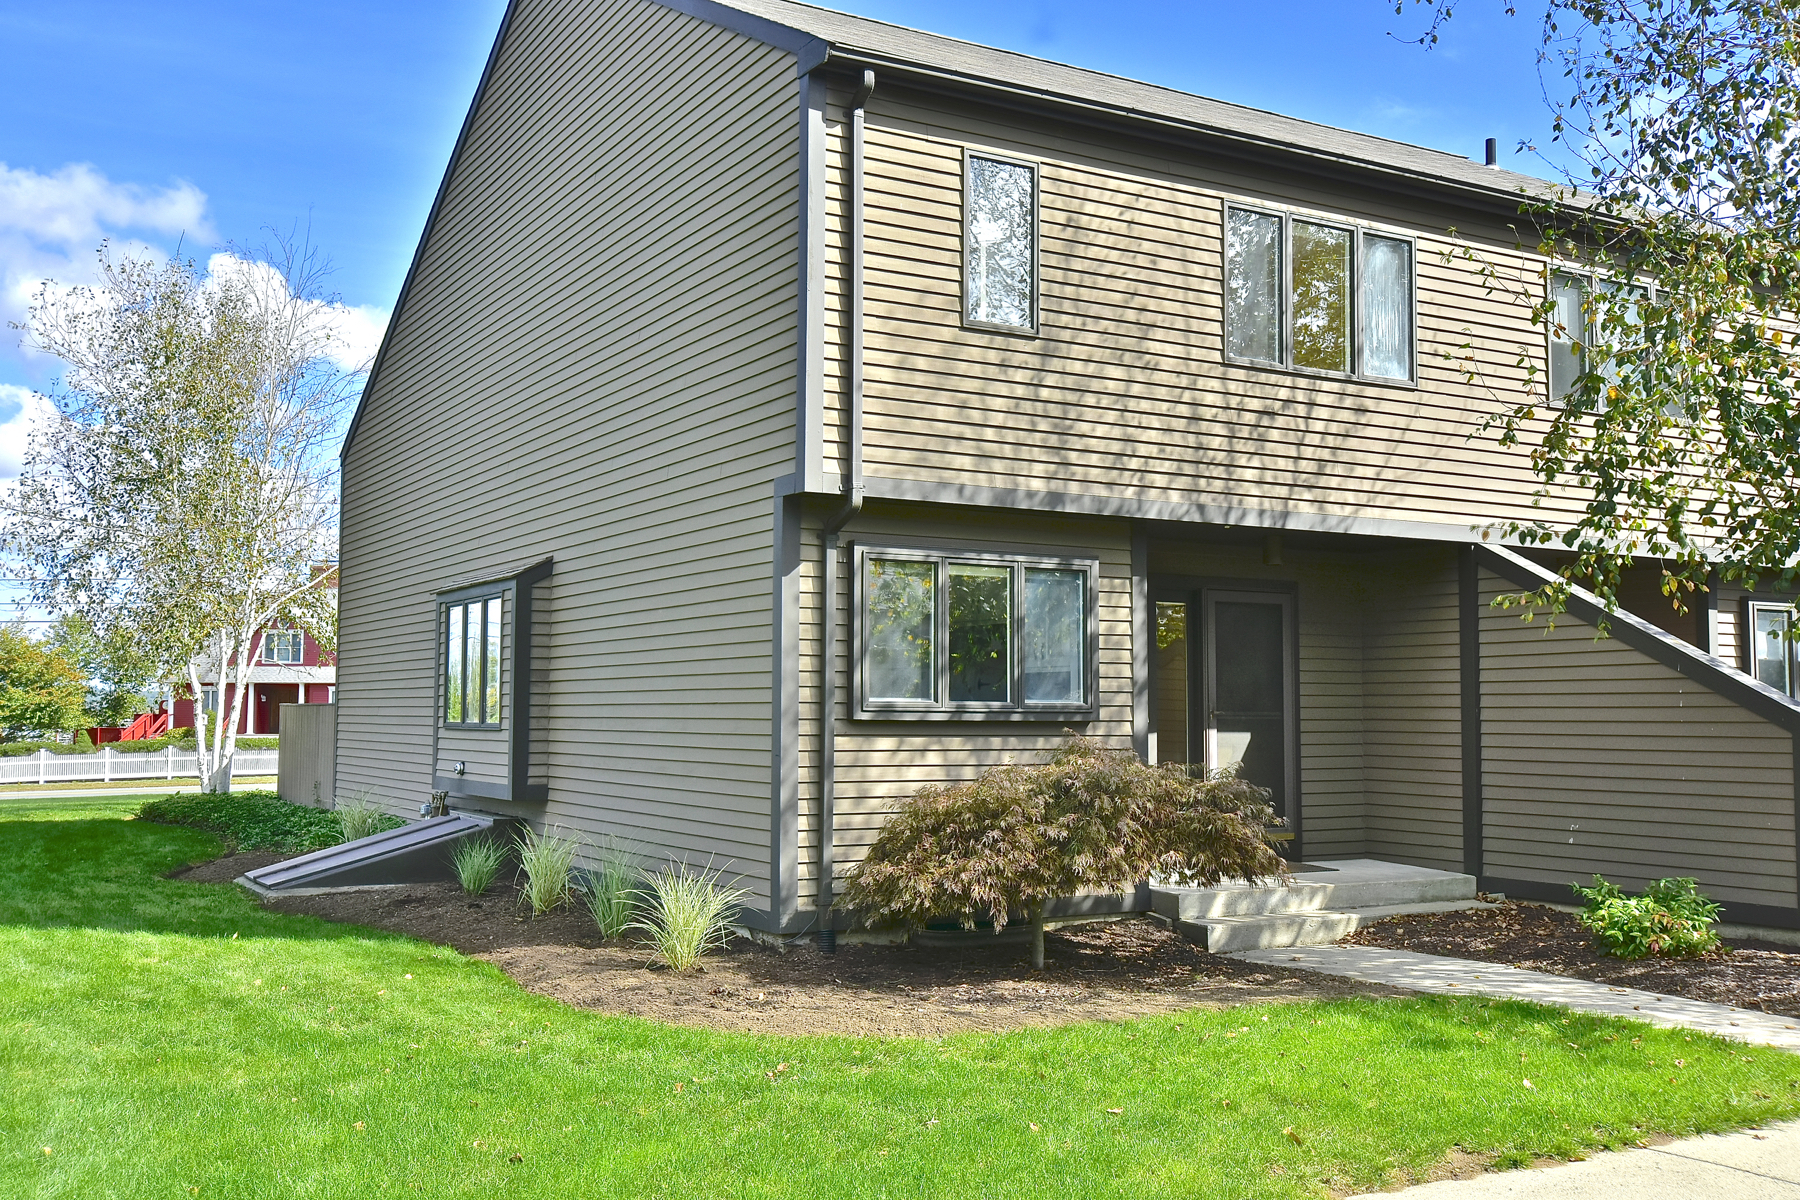 Condominio por un Venta en Desirable Three Story Townhouse 100 Sheffield St D1 Old Saybrook, Connecticut, 06475 Estados Unidos